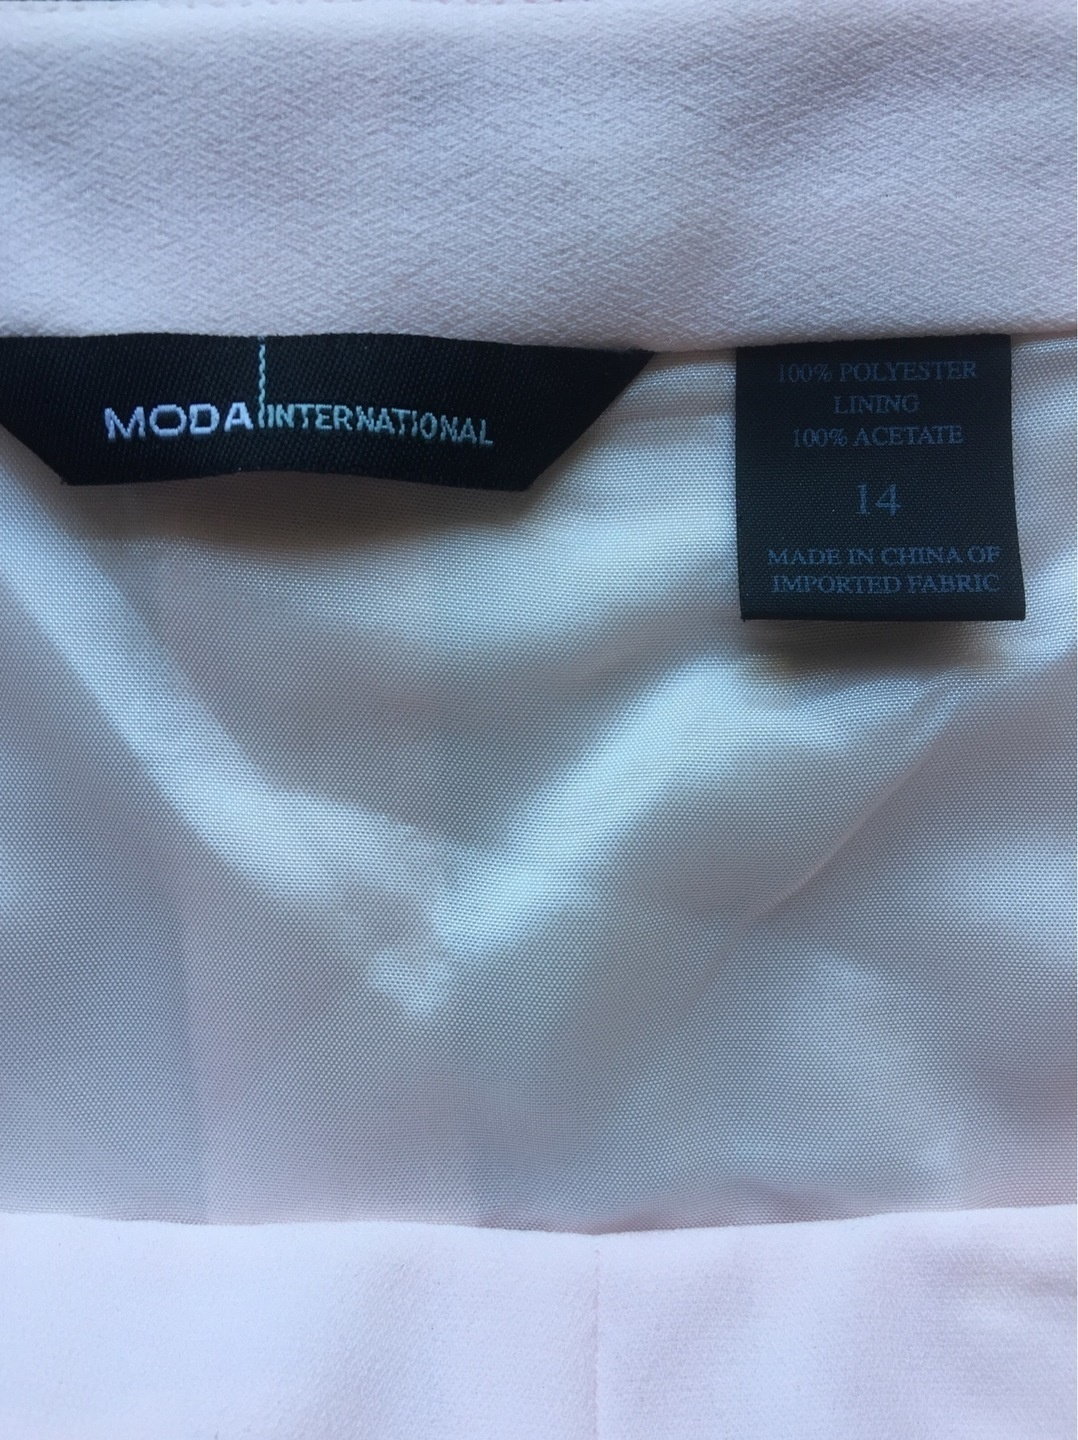 Women's skirts - MODA INTERNATIONAL photo 4